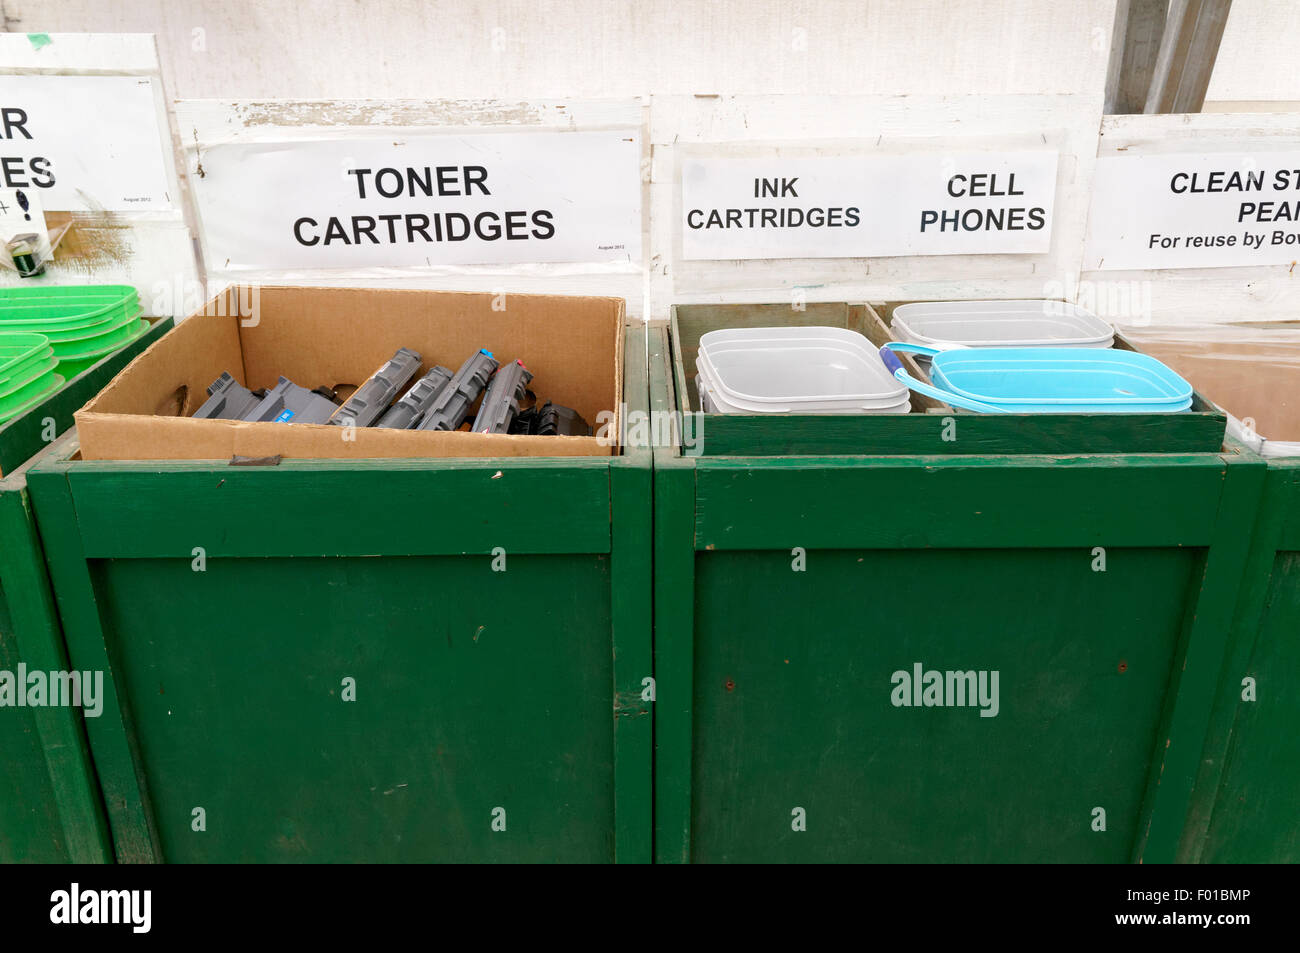 Electronics recycling bins at a recycling center on Bowen island, BC, Canada - Stock Image